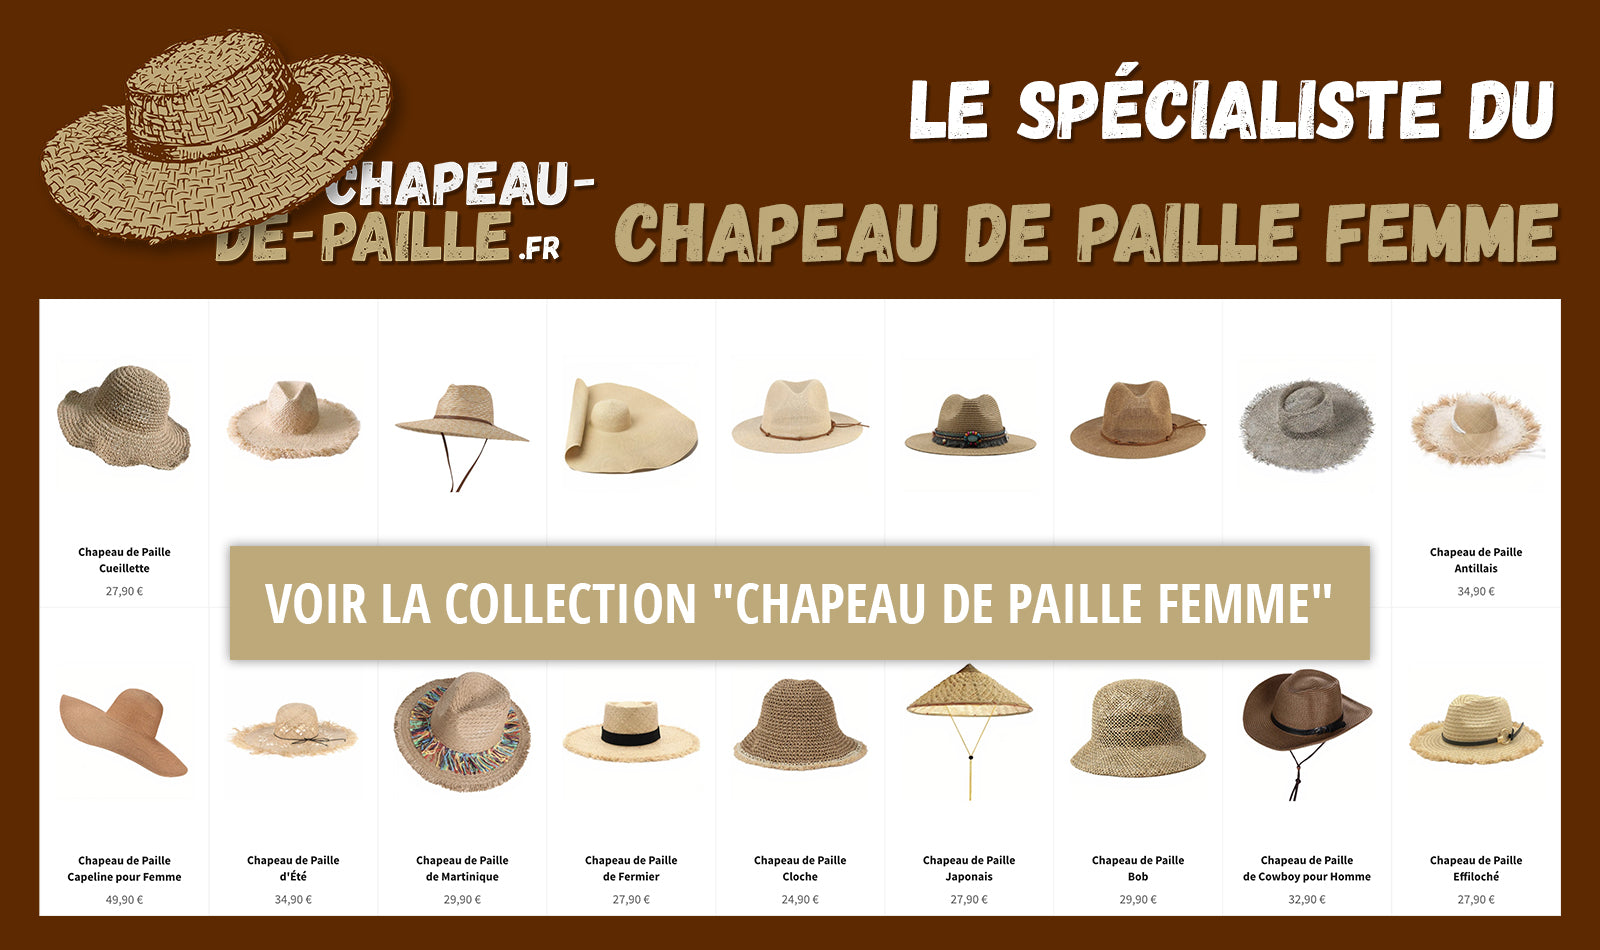 Collection Chapeau de Paille Femme